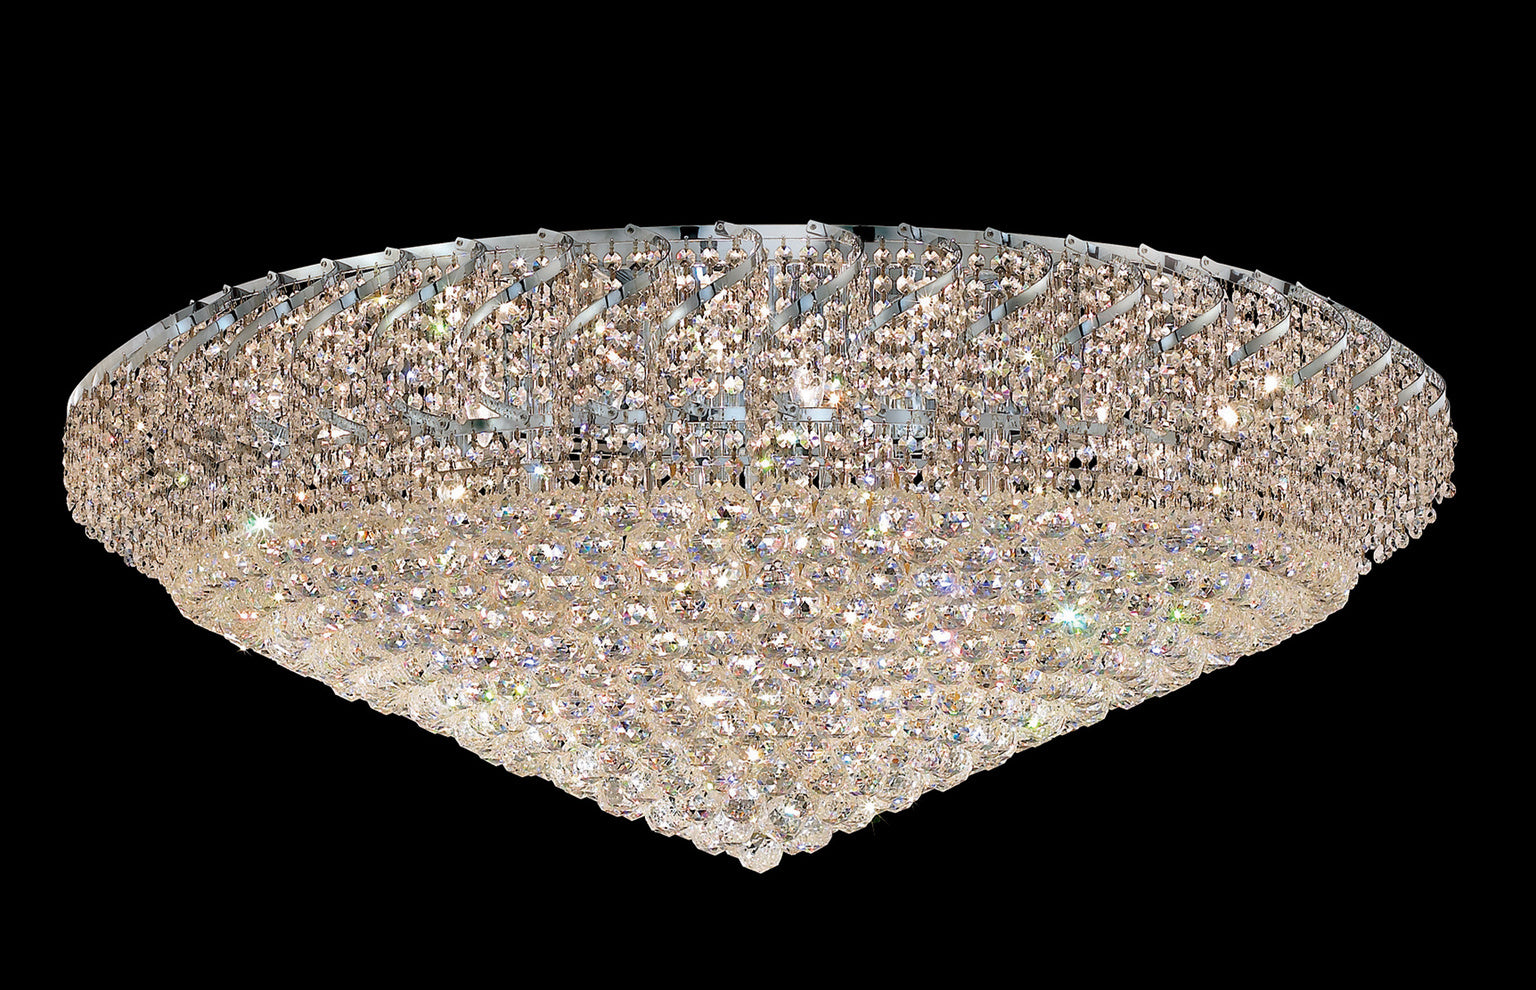 Belenus Flush Mount with 36 Lights - Chrome Finish